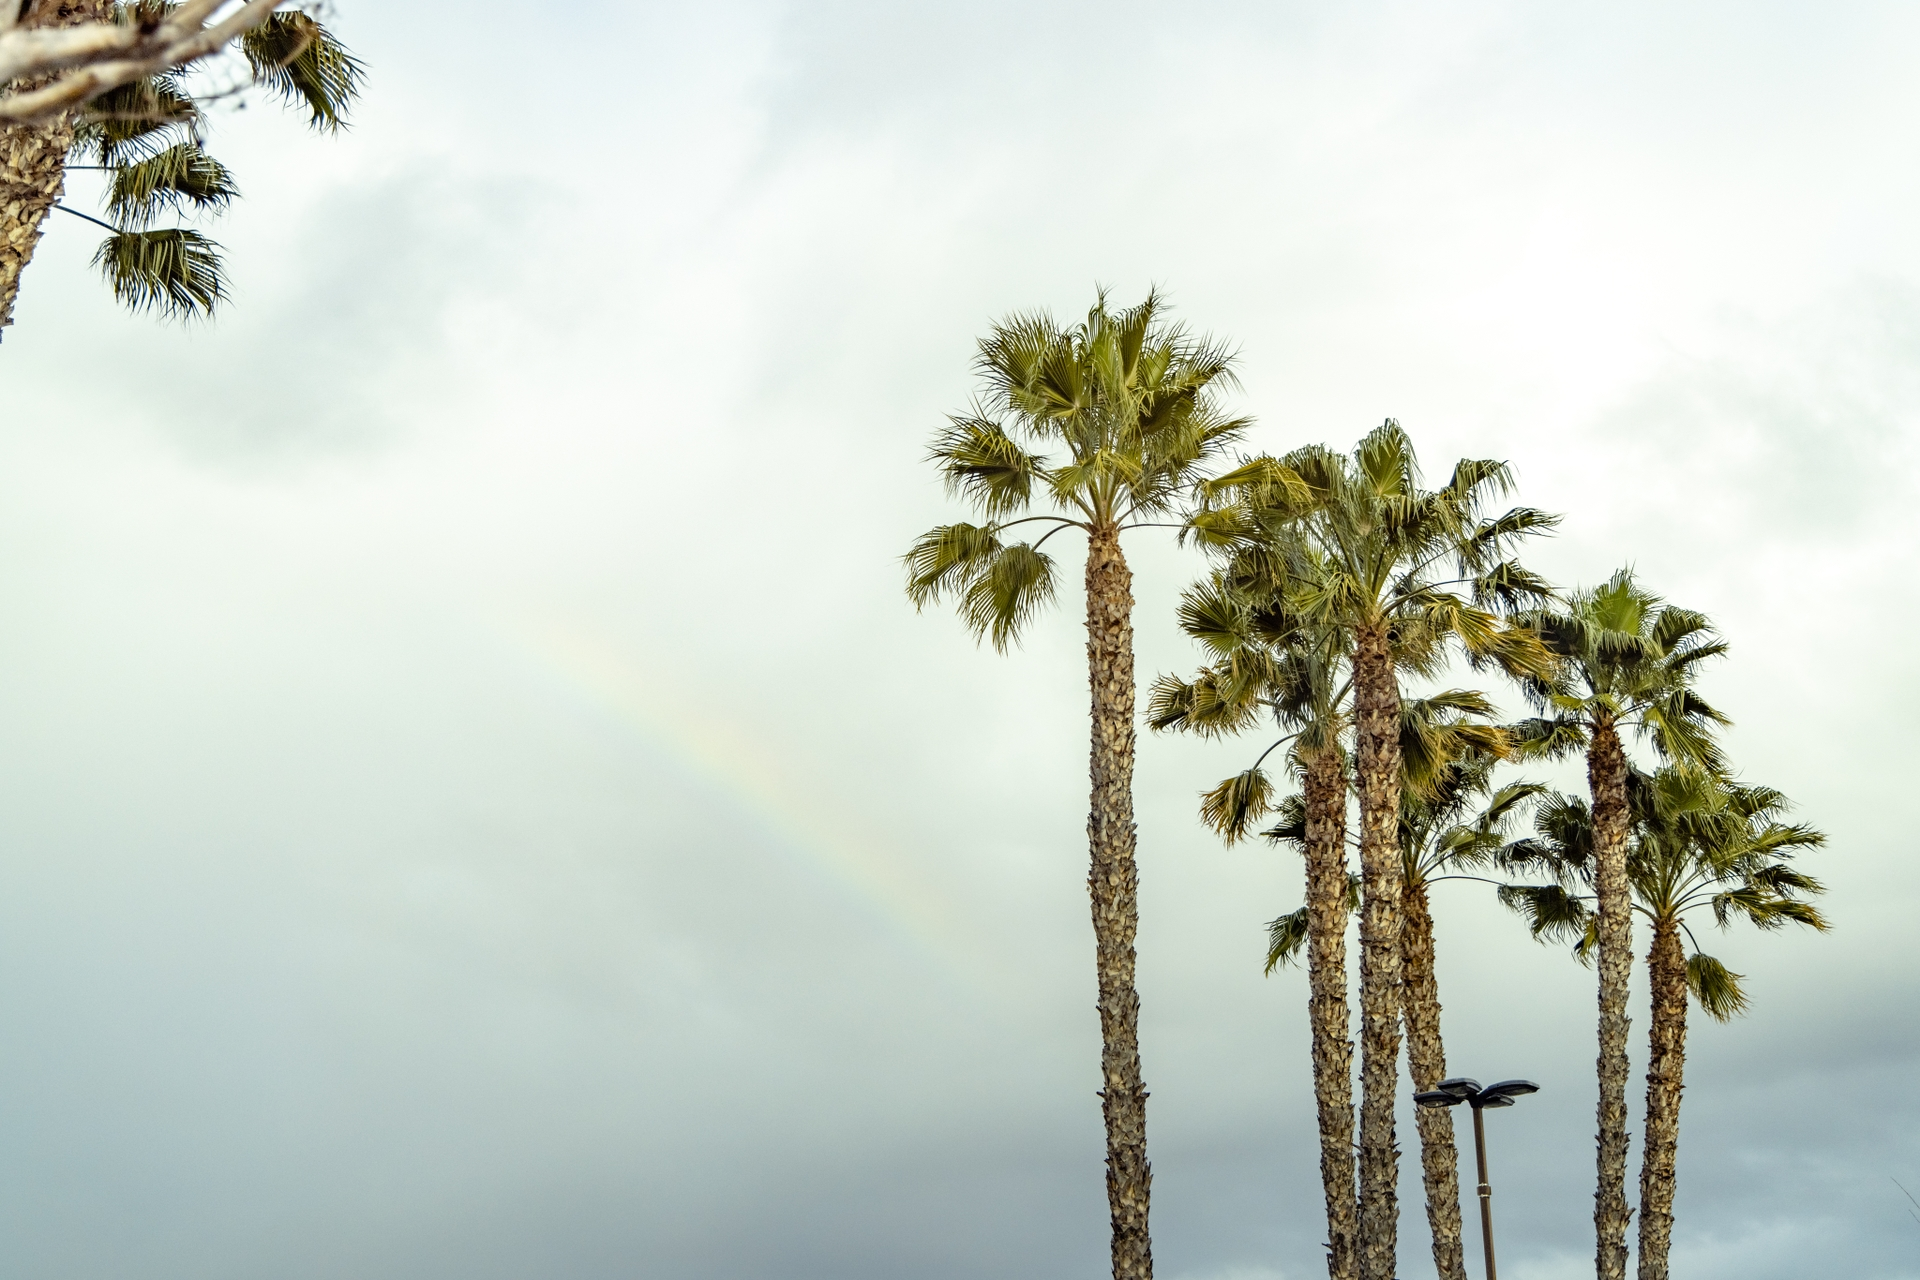 Palm trees cause power outages across SCE's service area regularly.